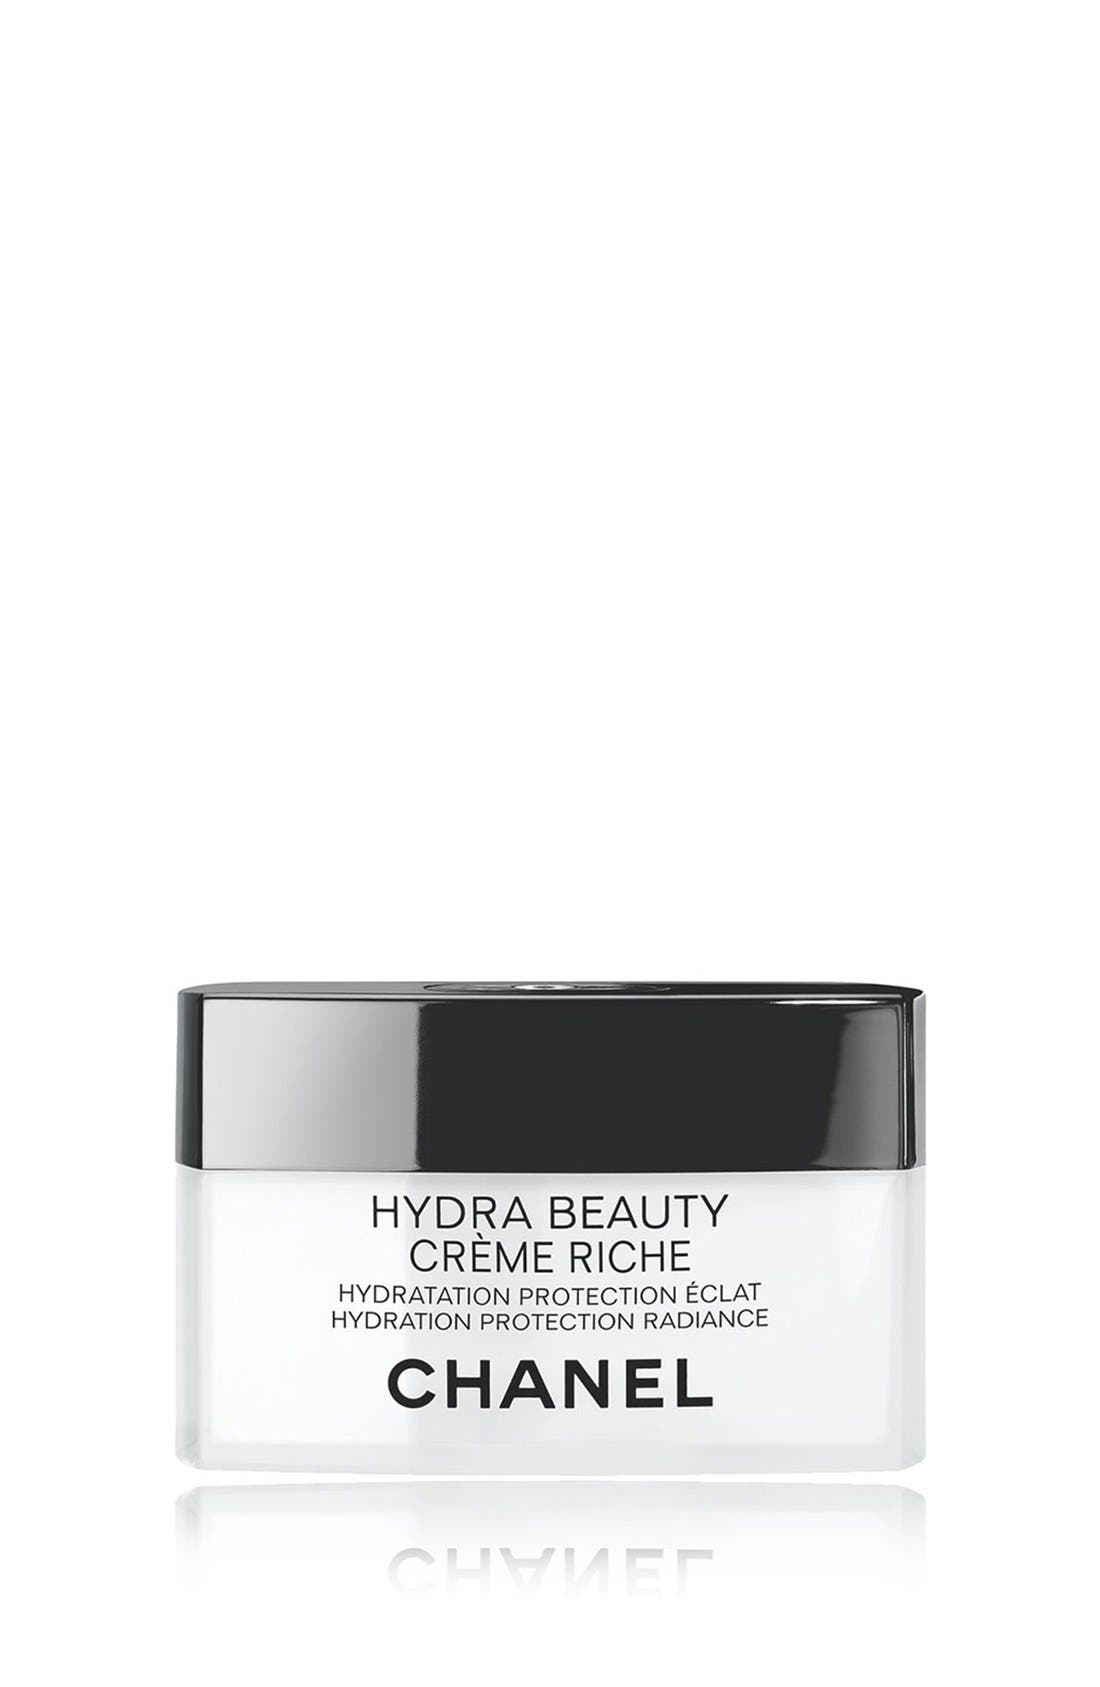 CHANEL HYDRA BEAUTY CRÈME RICHE Hydration Protection Radiance